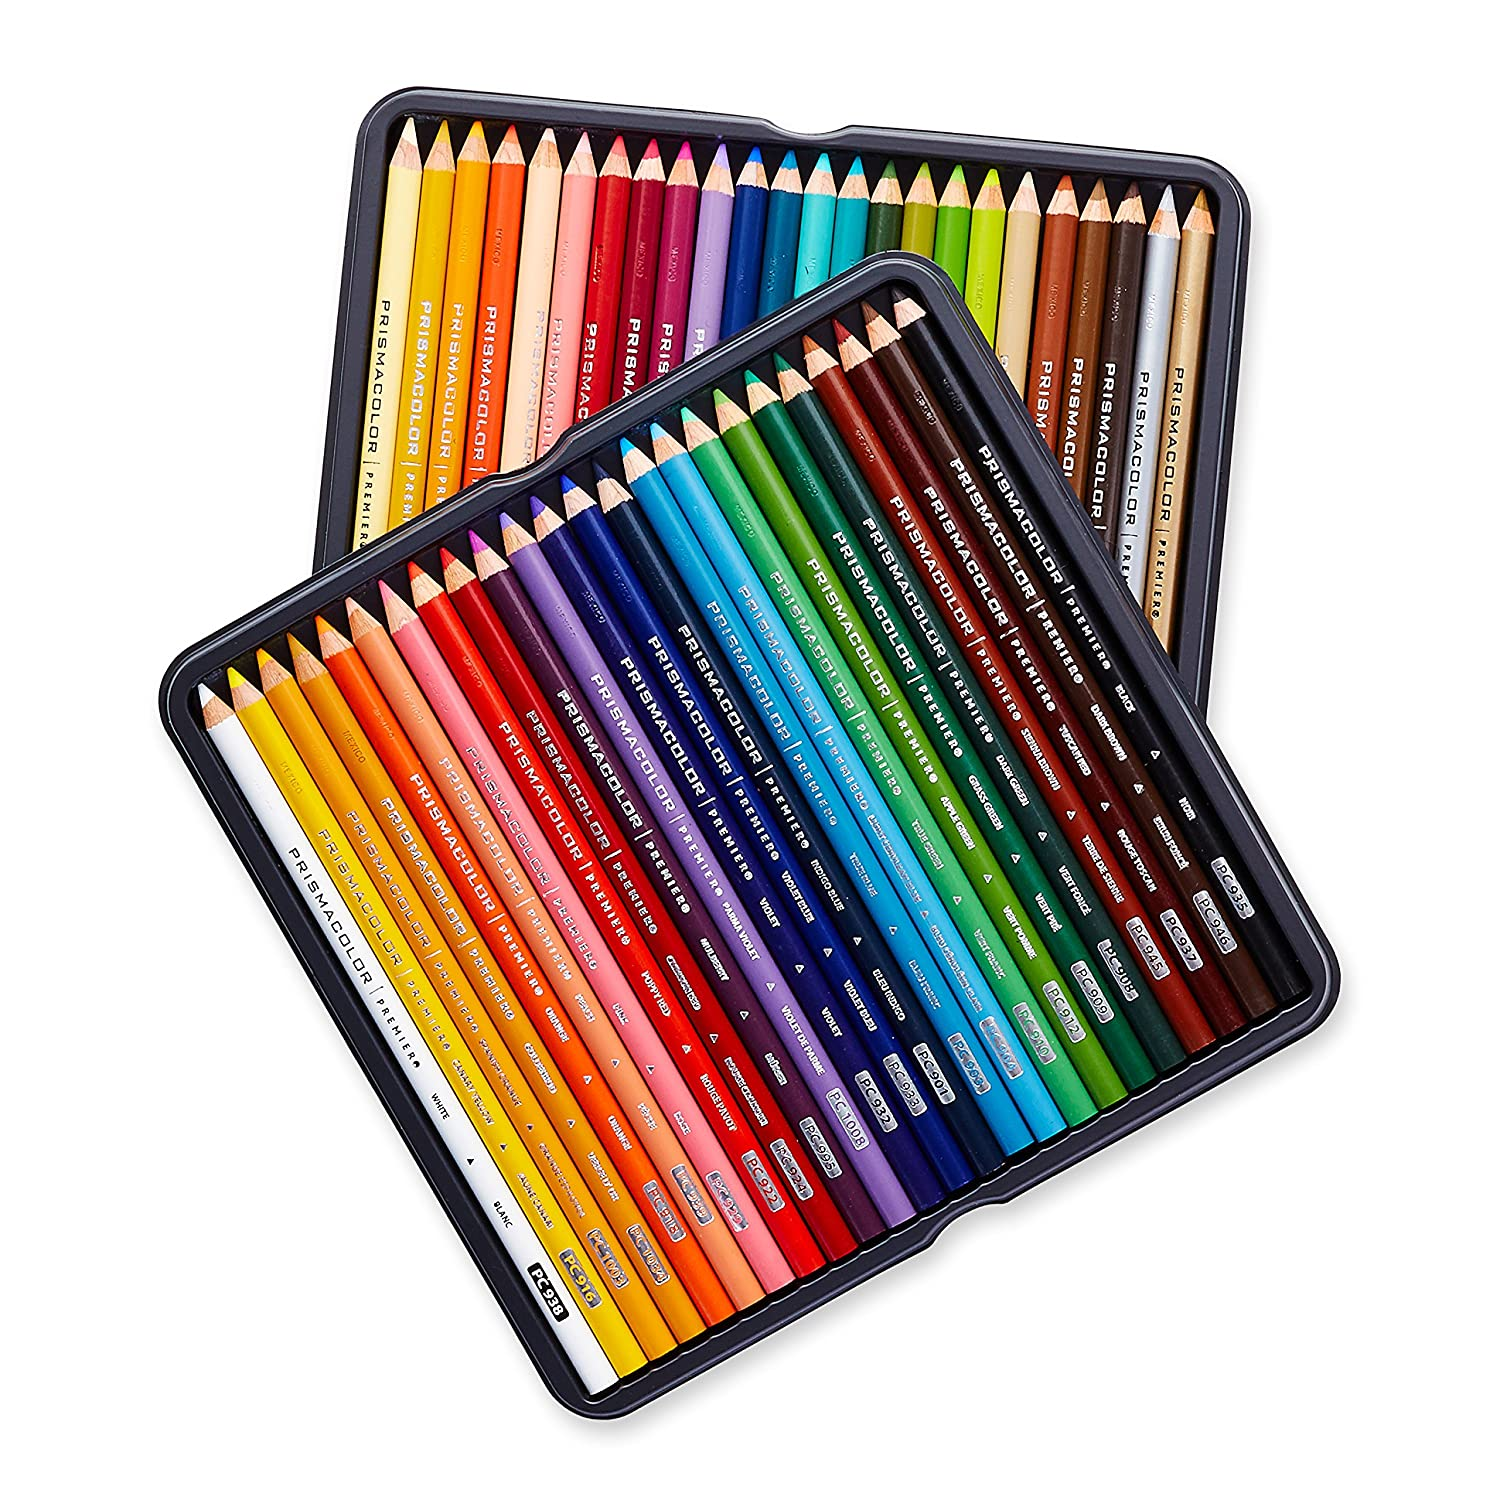 Prismacolor Colored Pencil Set for Artists. #coloredpencils #artsupplies